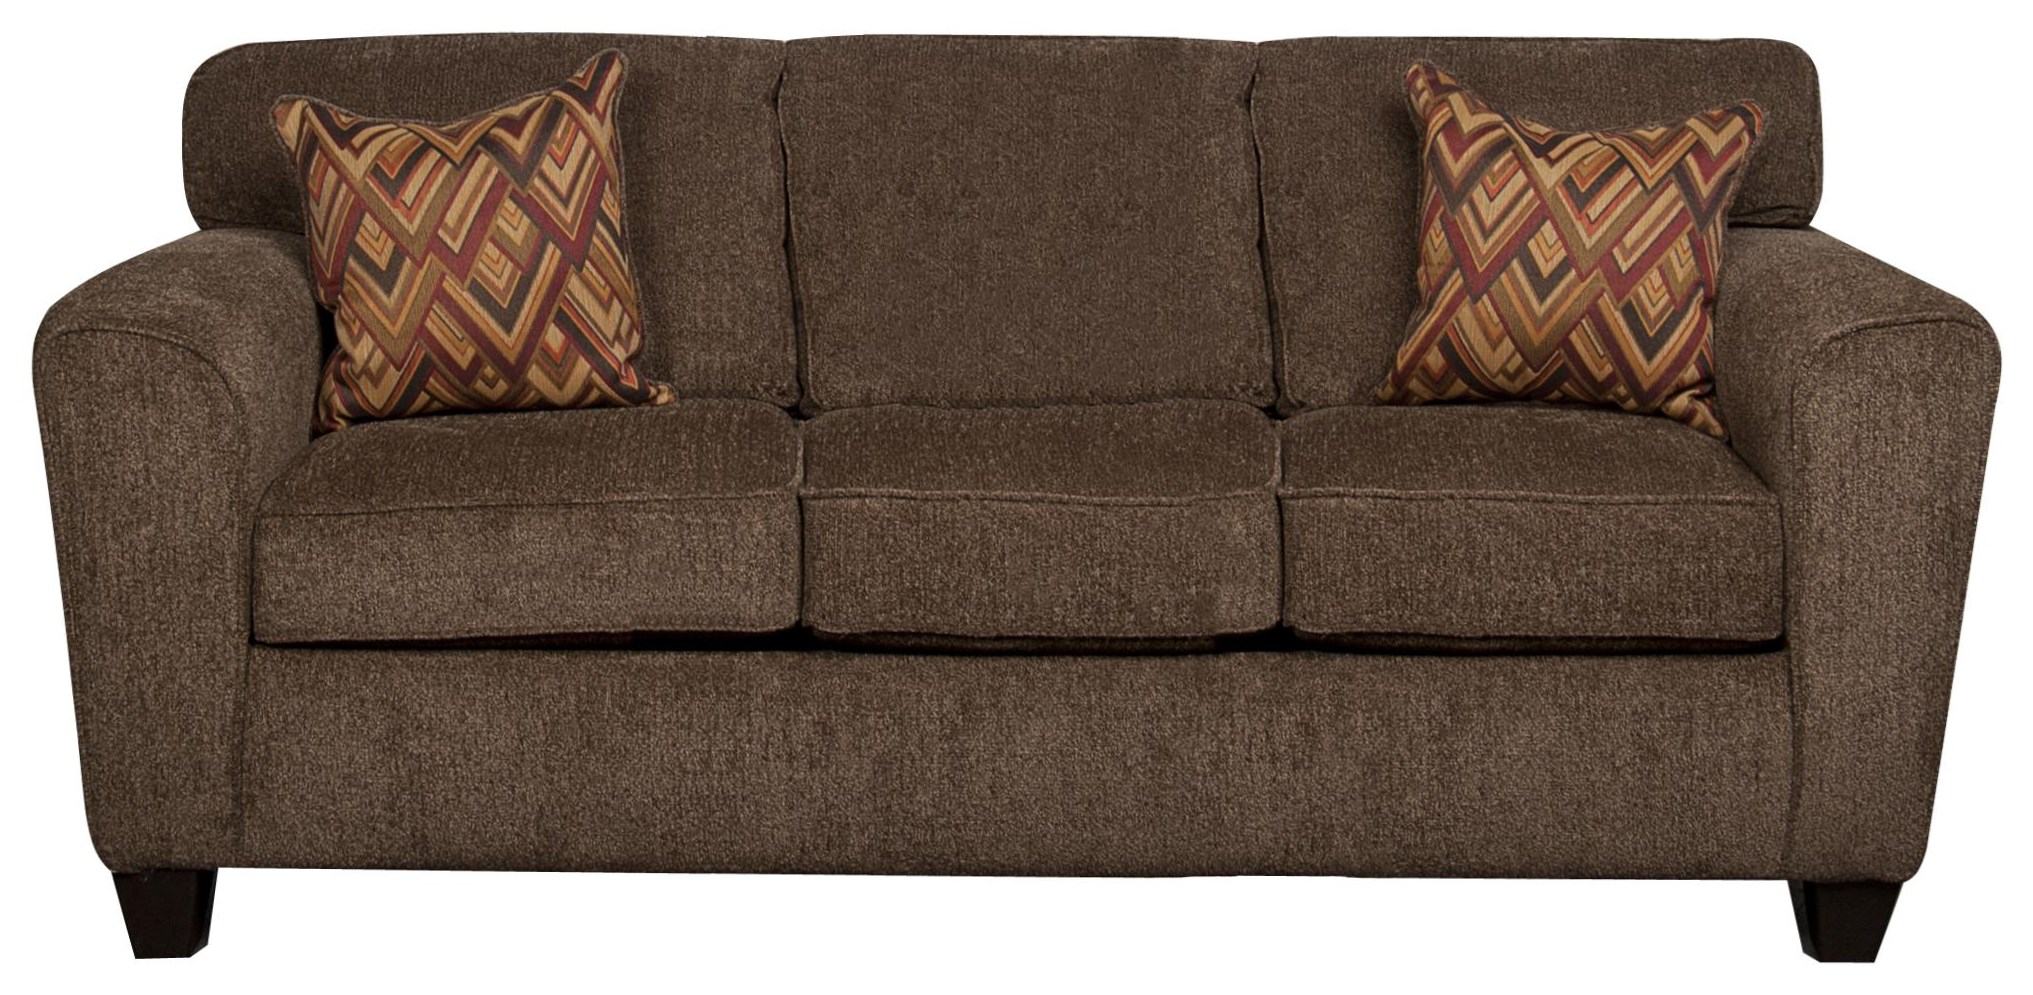 Wilson Wilson Sofa with Accent Pillows by Peak Living at Morris Home